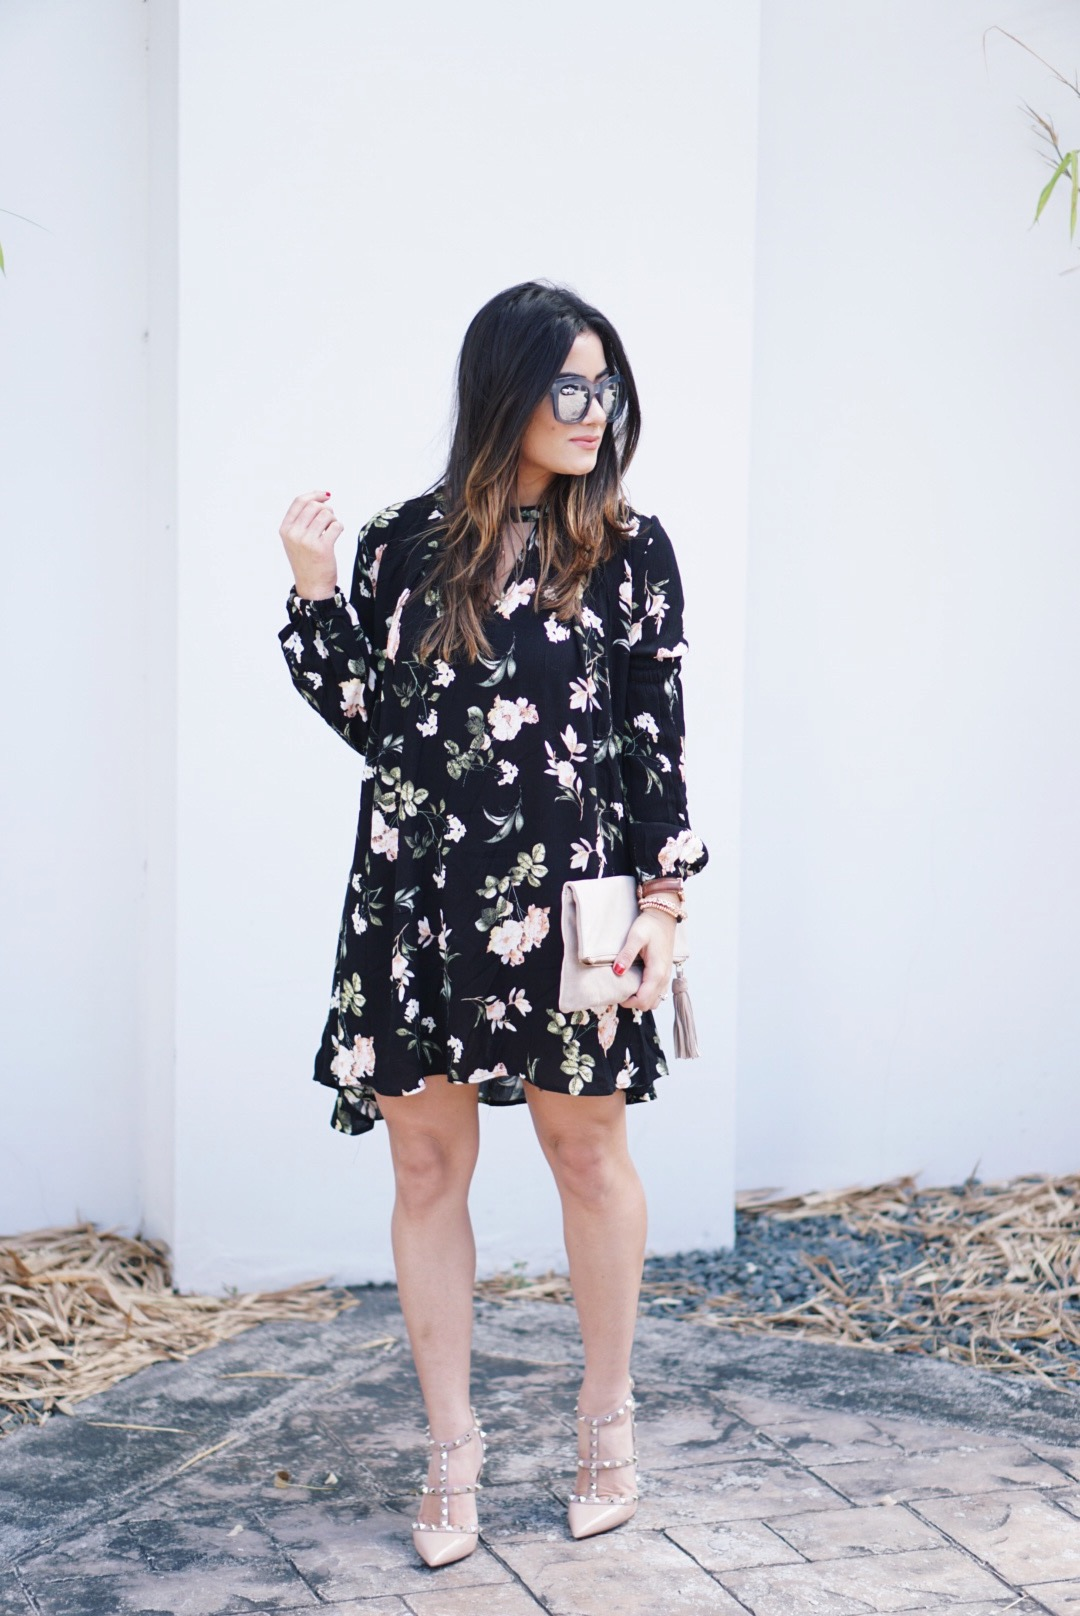 Sugar Love Chic Blogger Krista Perez shares 10 Floral Dresses You'll Live in This Spring